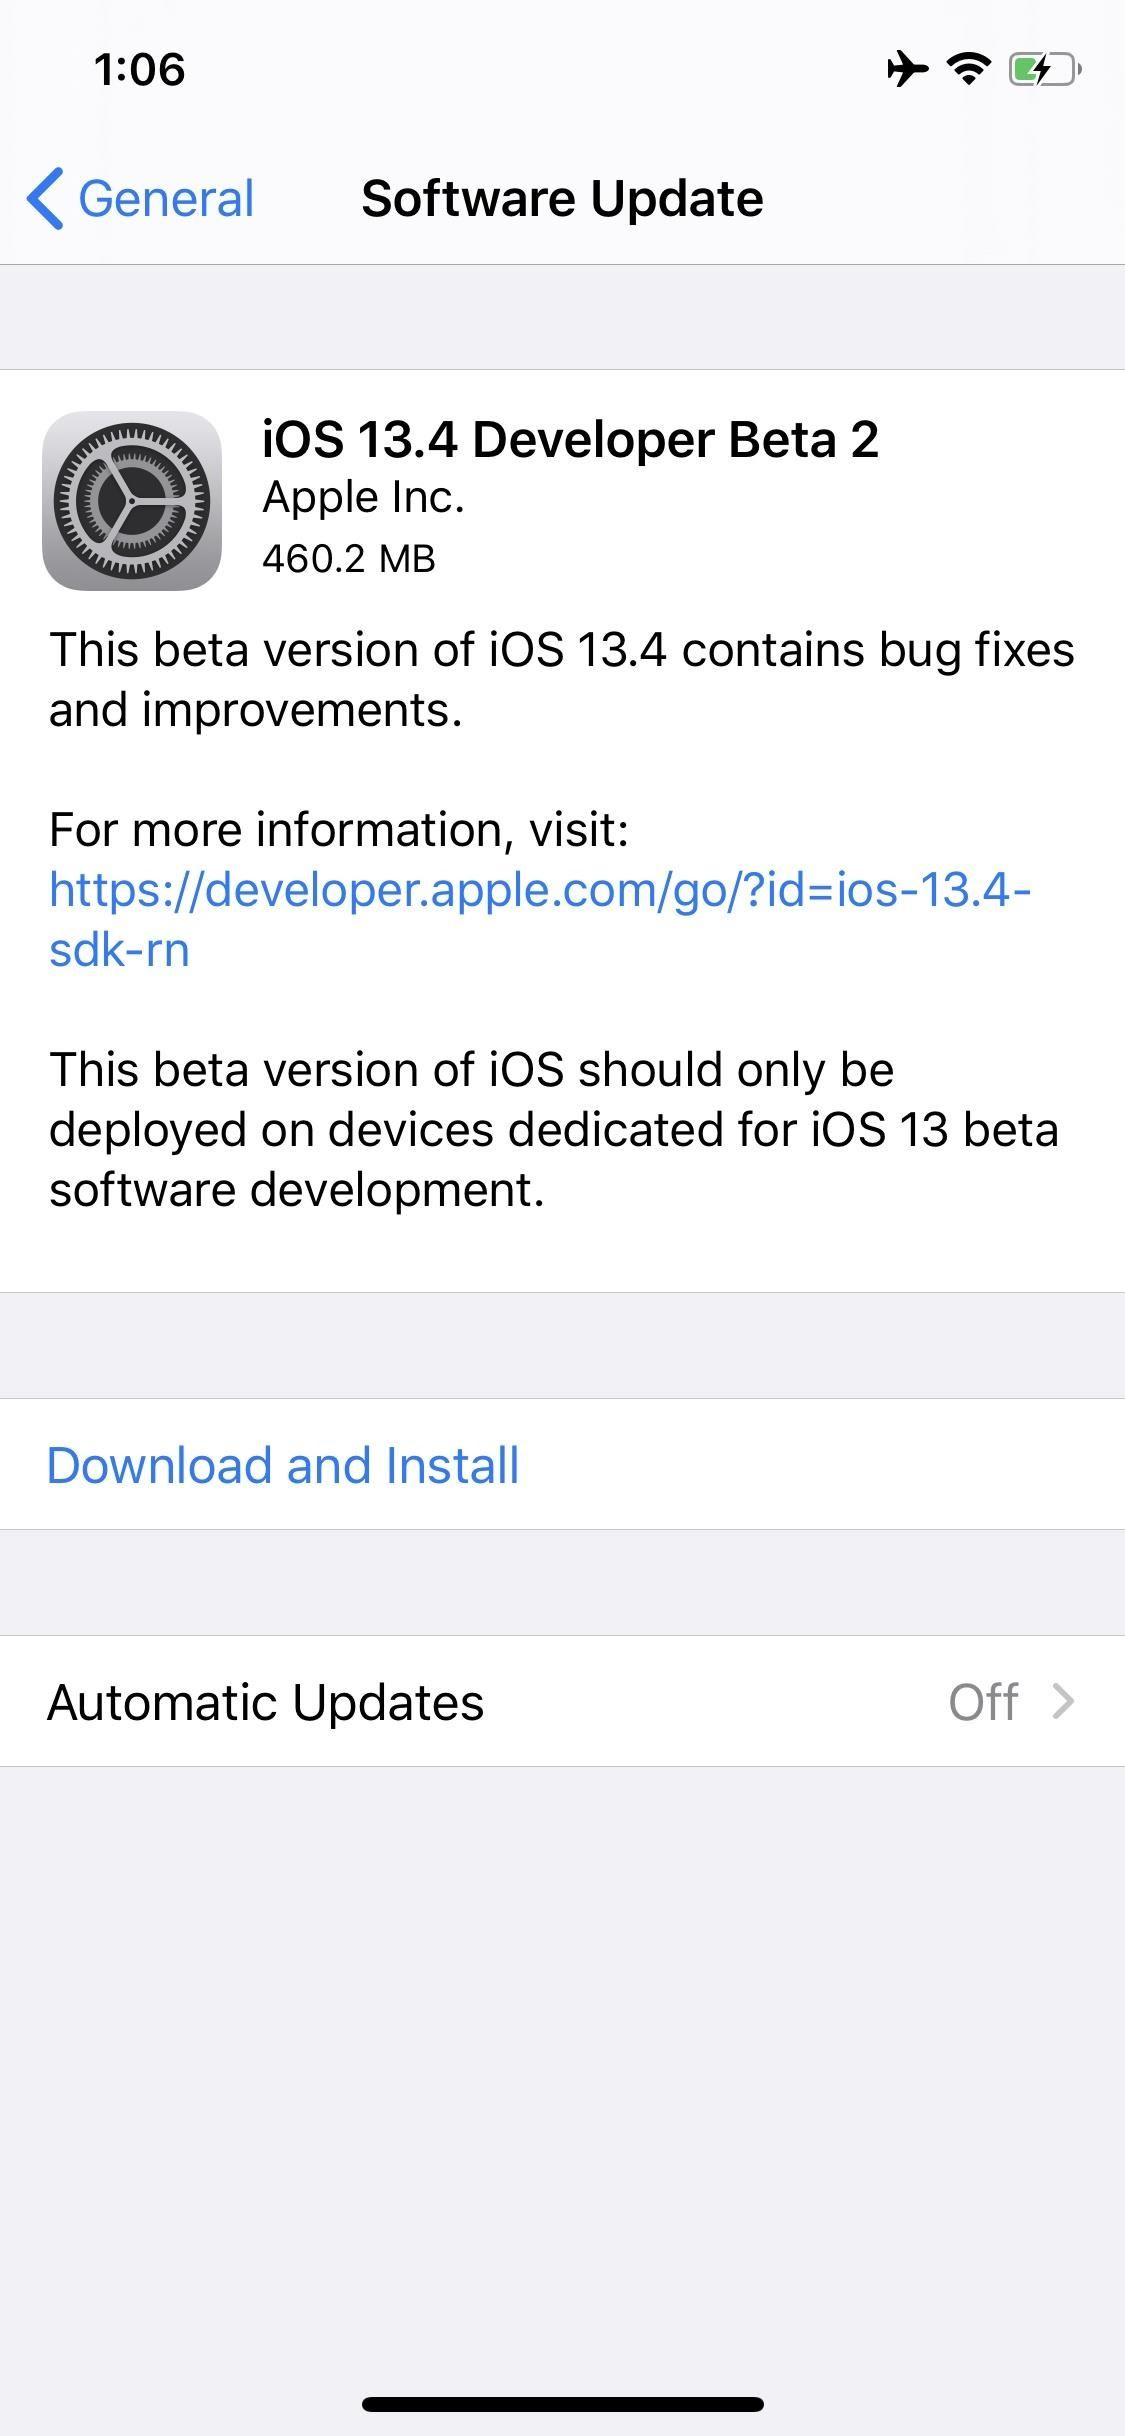 Apple Releases iOS 13.4 Developer Beta 2 for iPhone, Has New TV Options & Updated Mail Toolbar